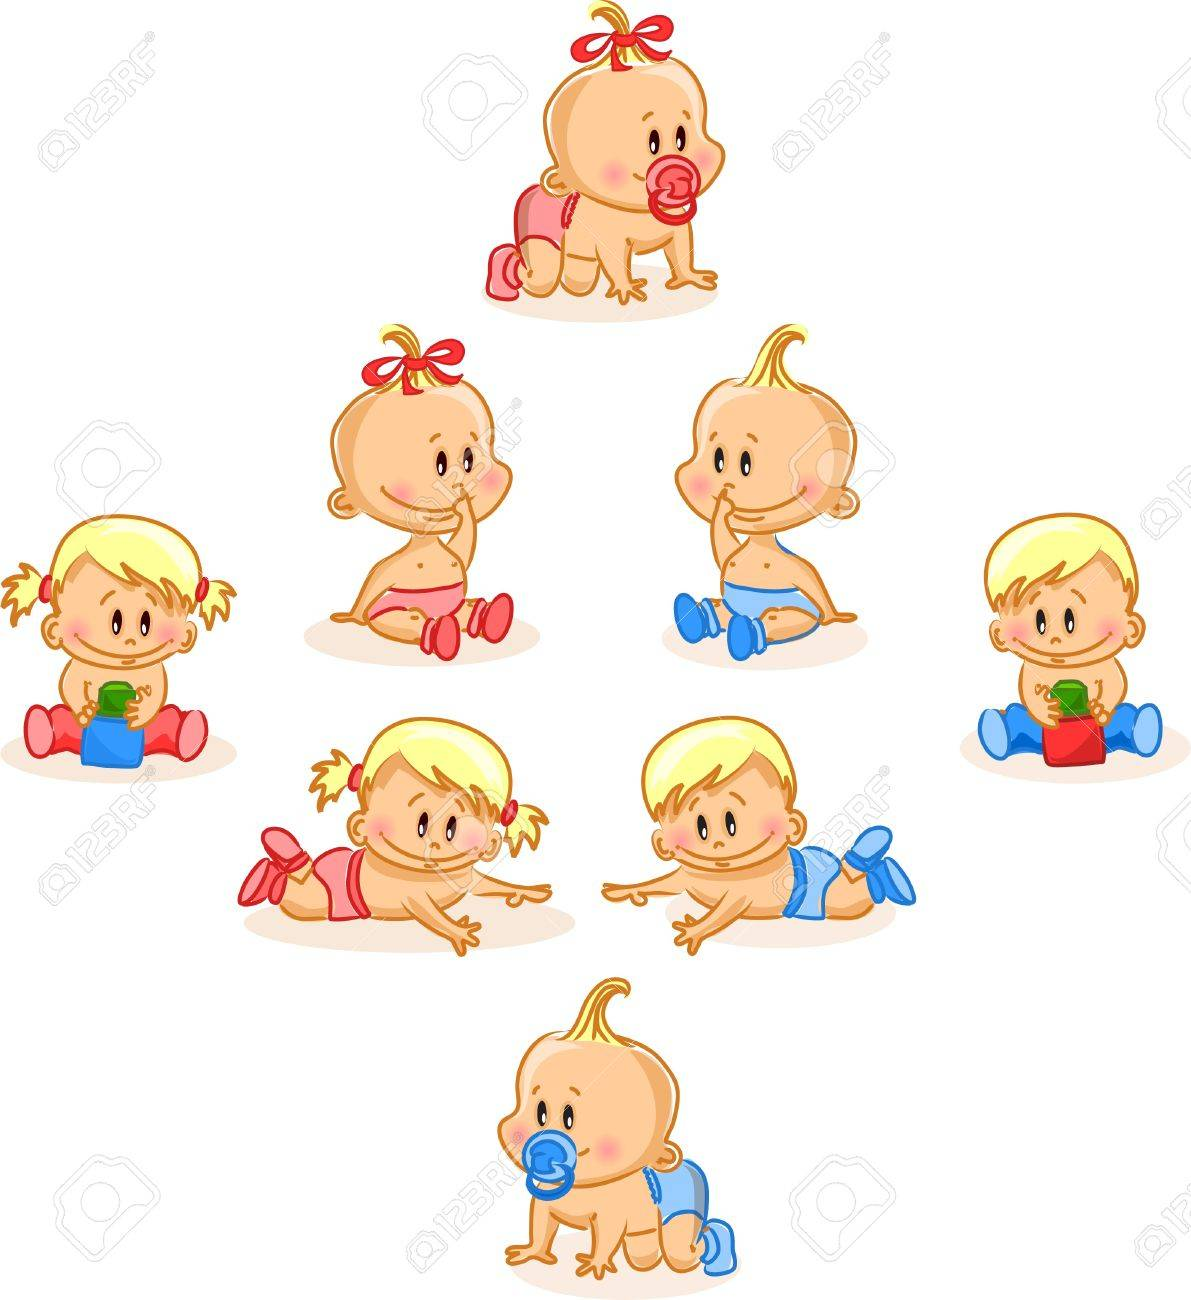 Vector illustration of baby boys and baby girls - 12480538